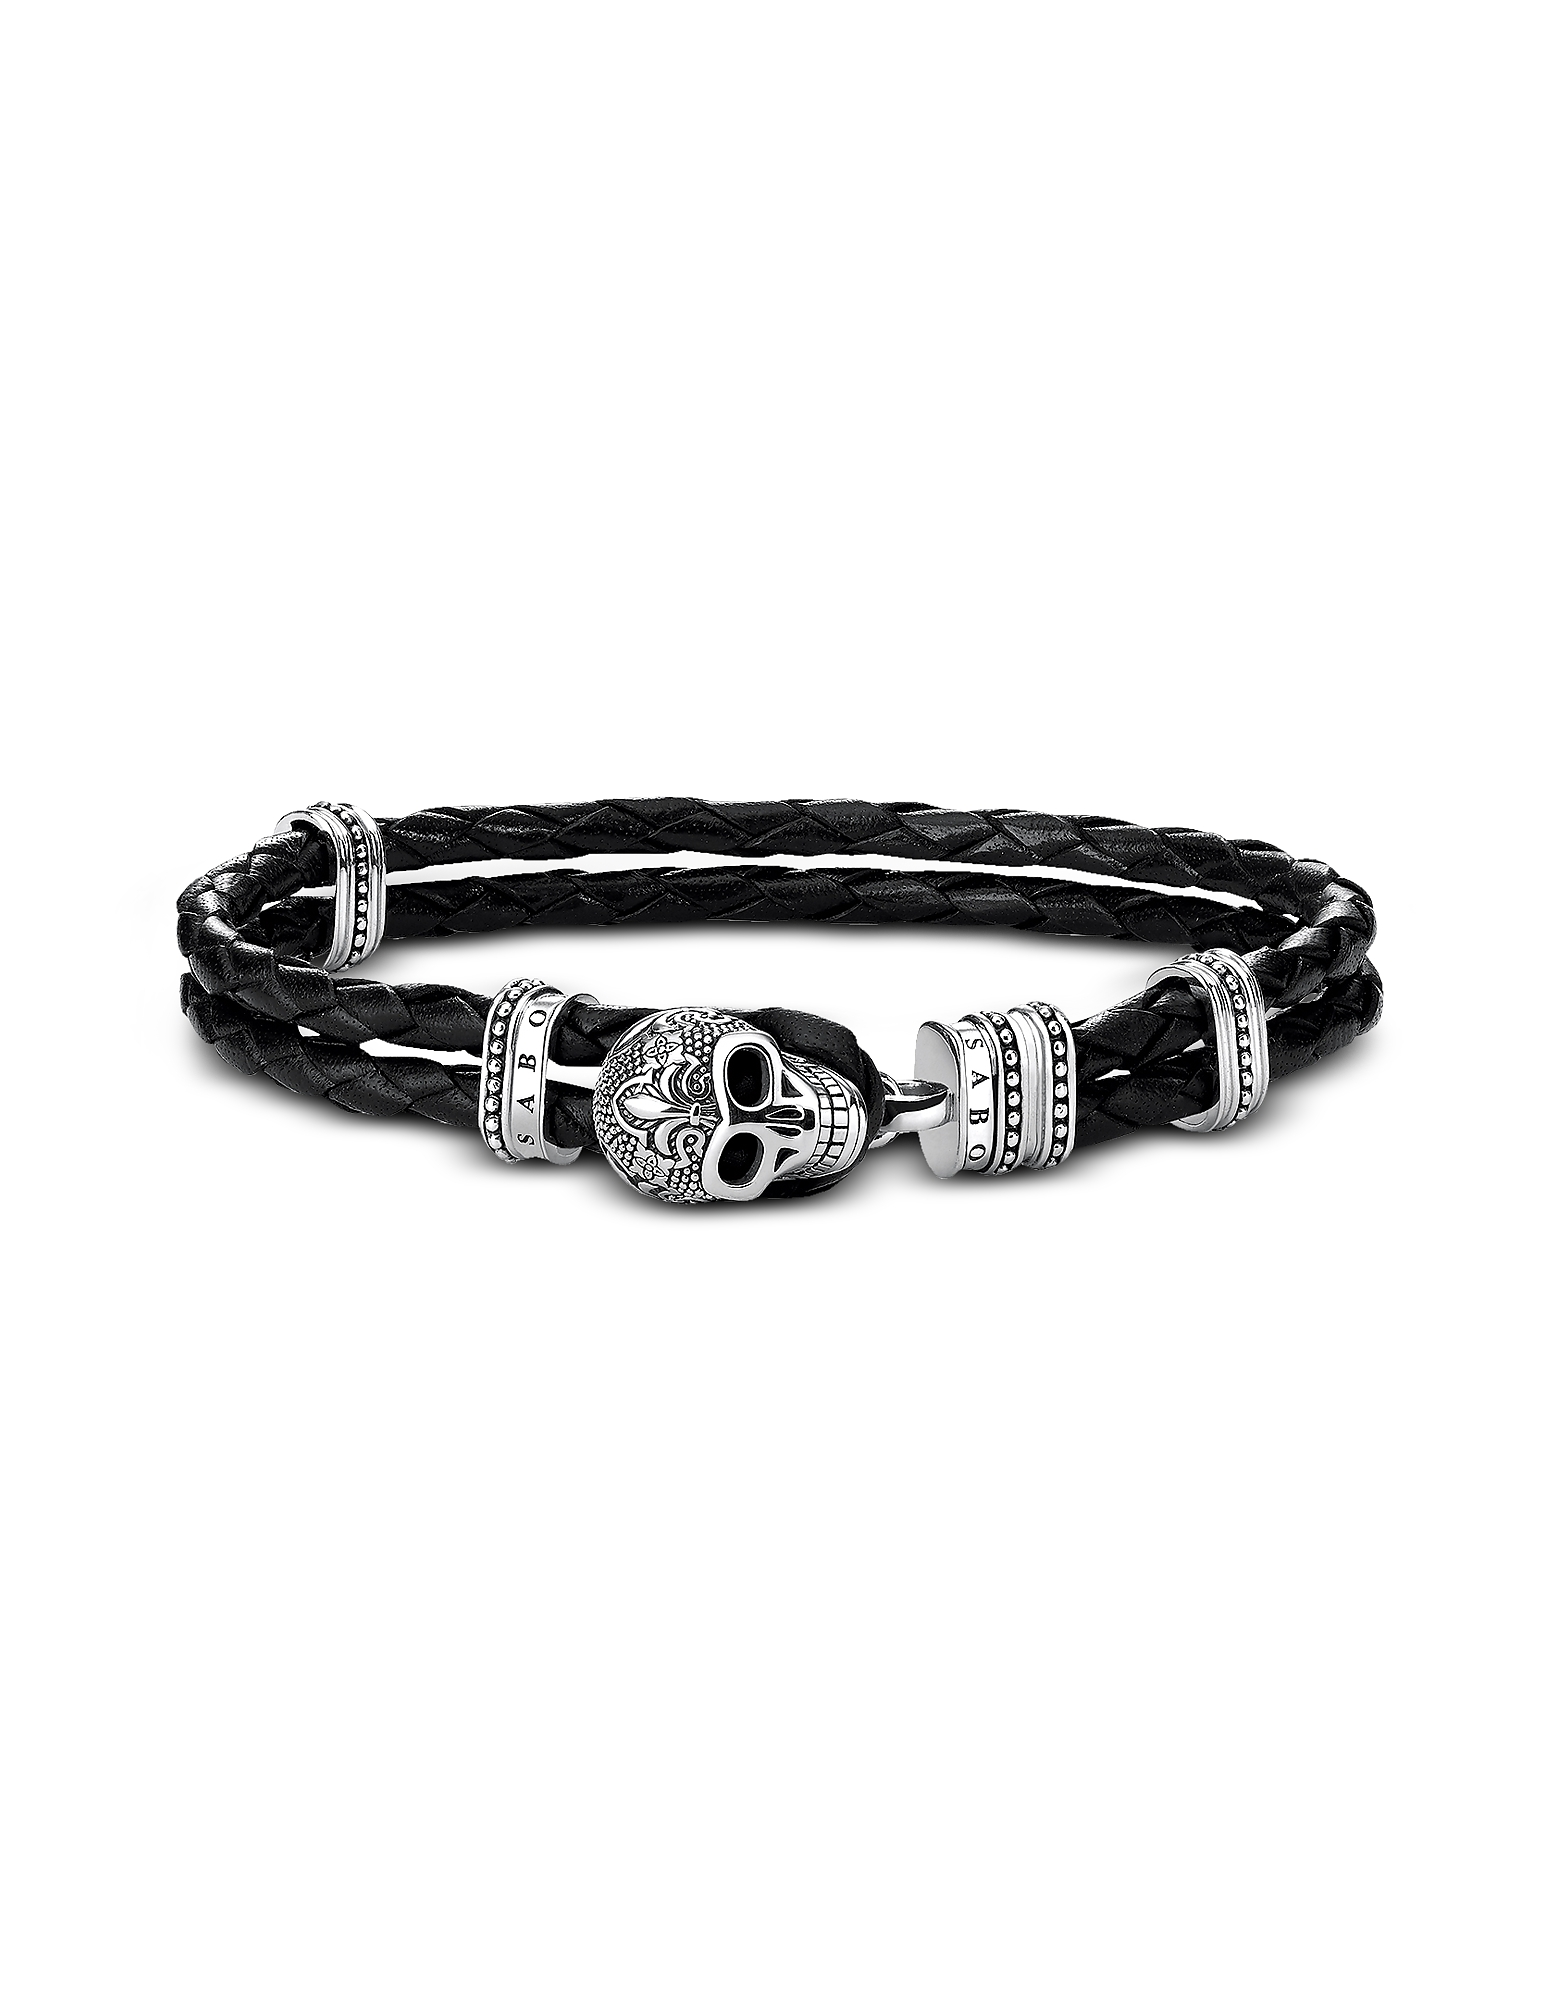 Thomas Sabo Men's Bracelets, Blackened 925 Sterling Silver and Leather Skull with Lily Double Bracel